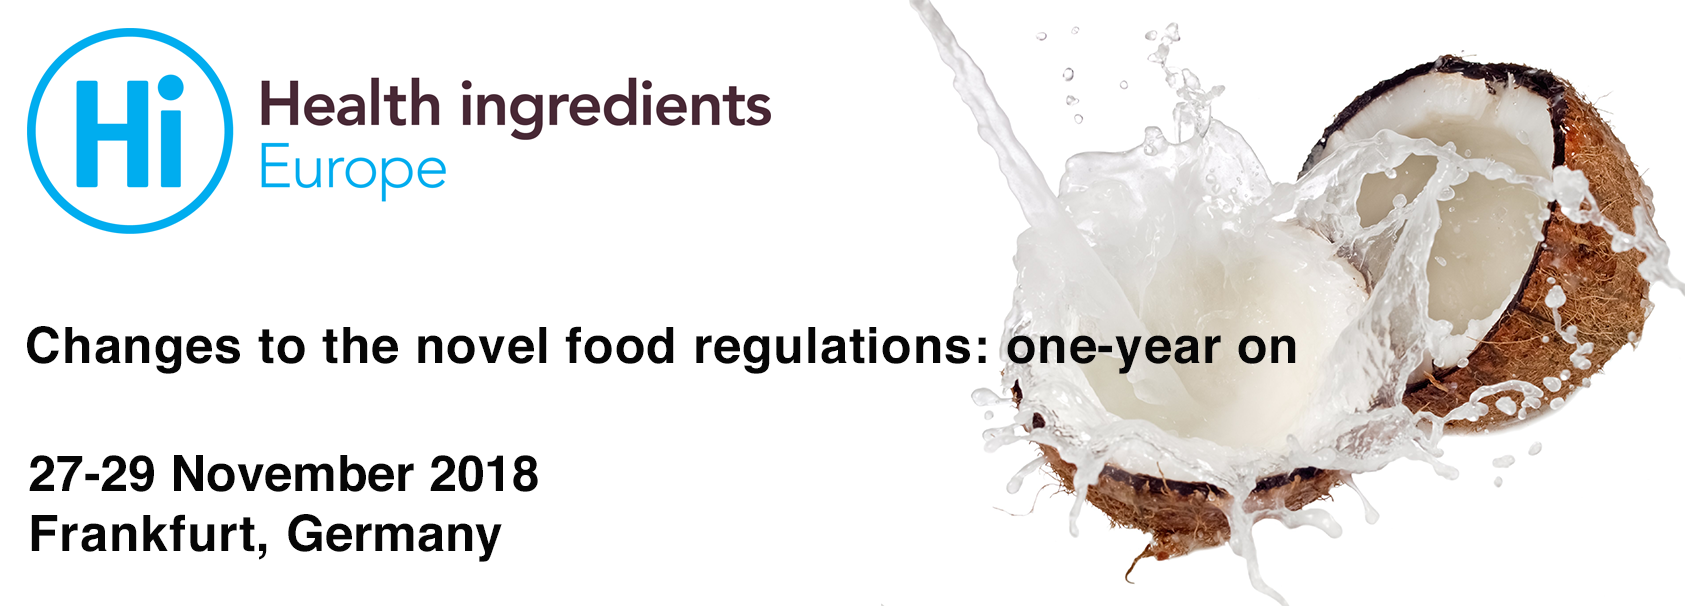 Changes to the novel food regulations: one year on – meet Pen & Tec at Health Ingredients Europe 2018